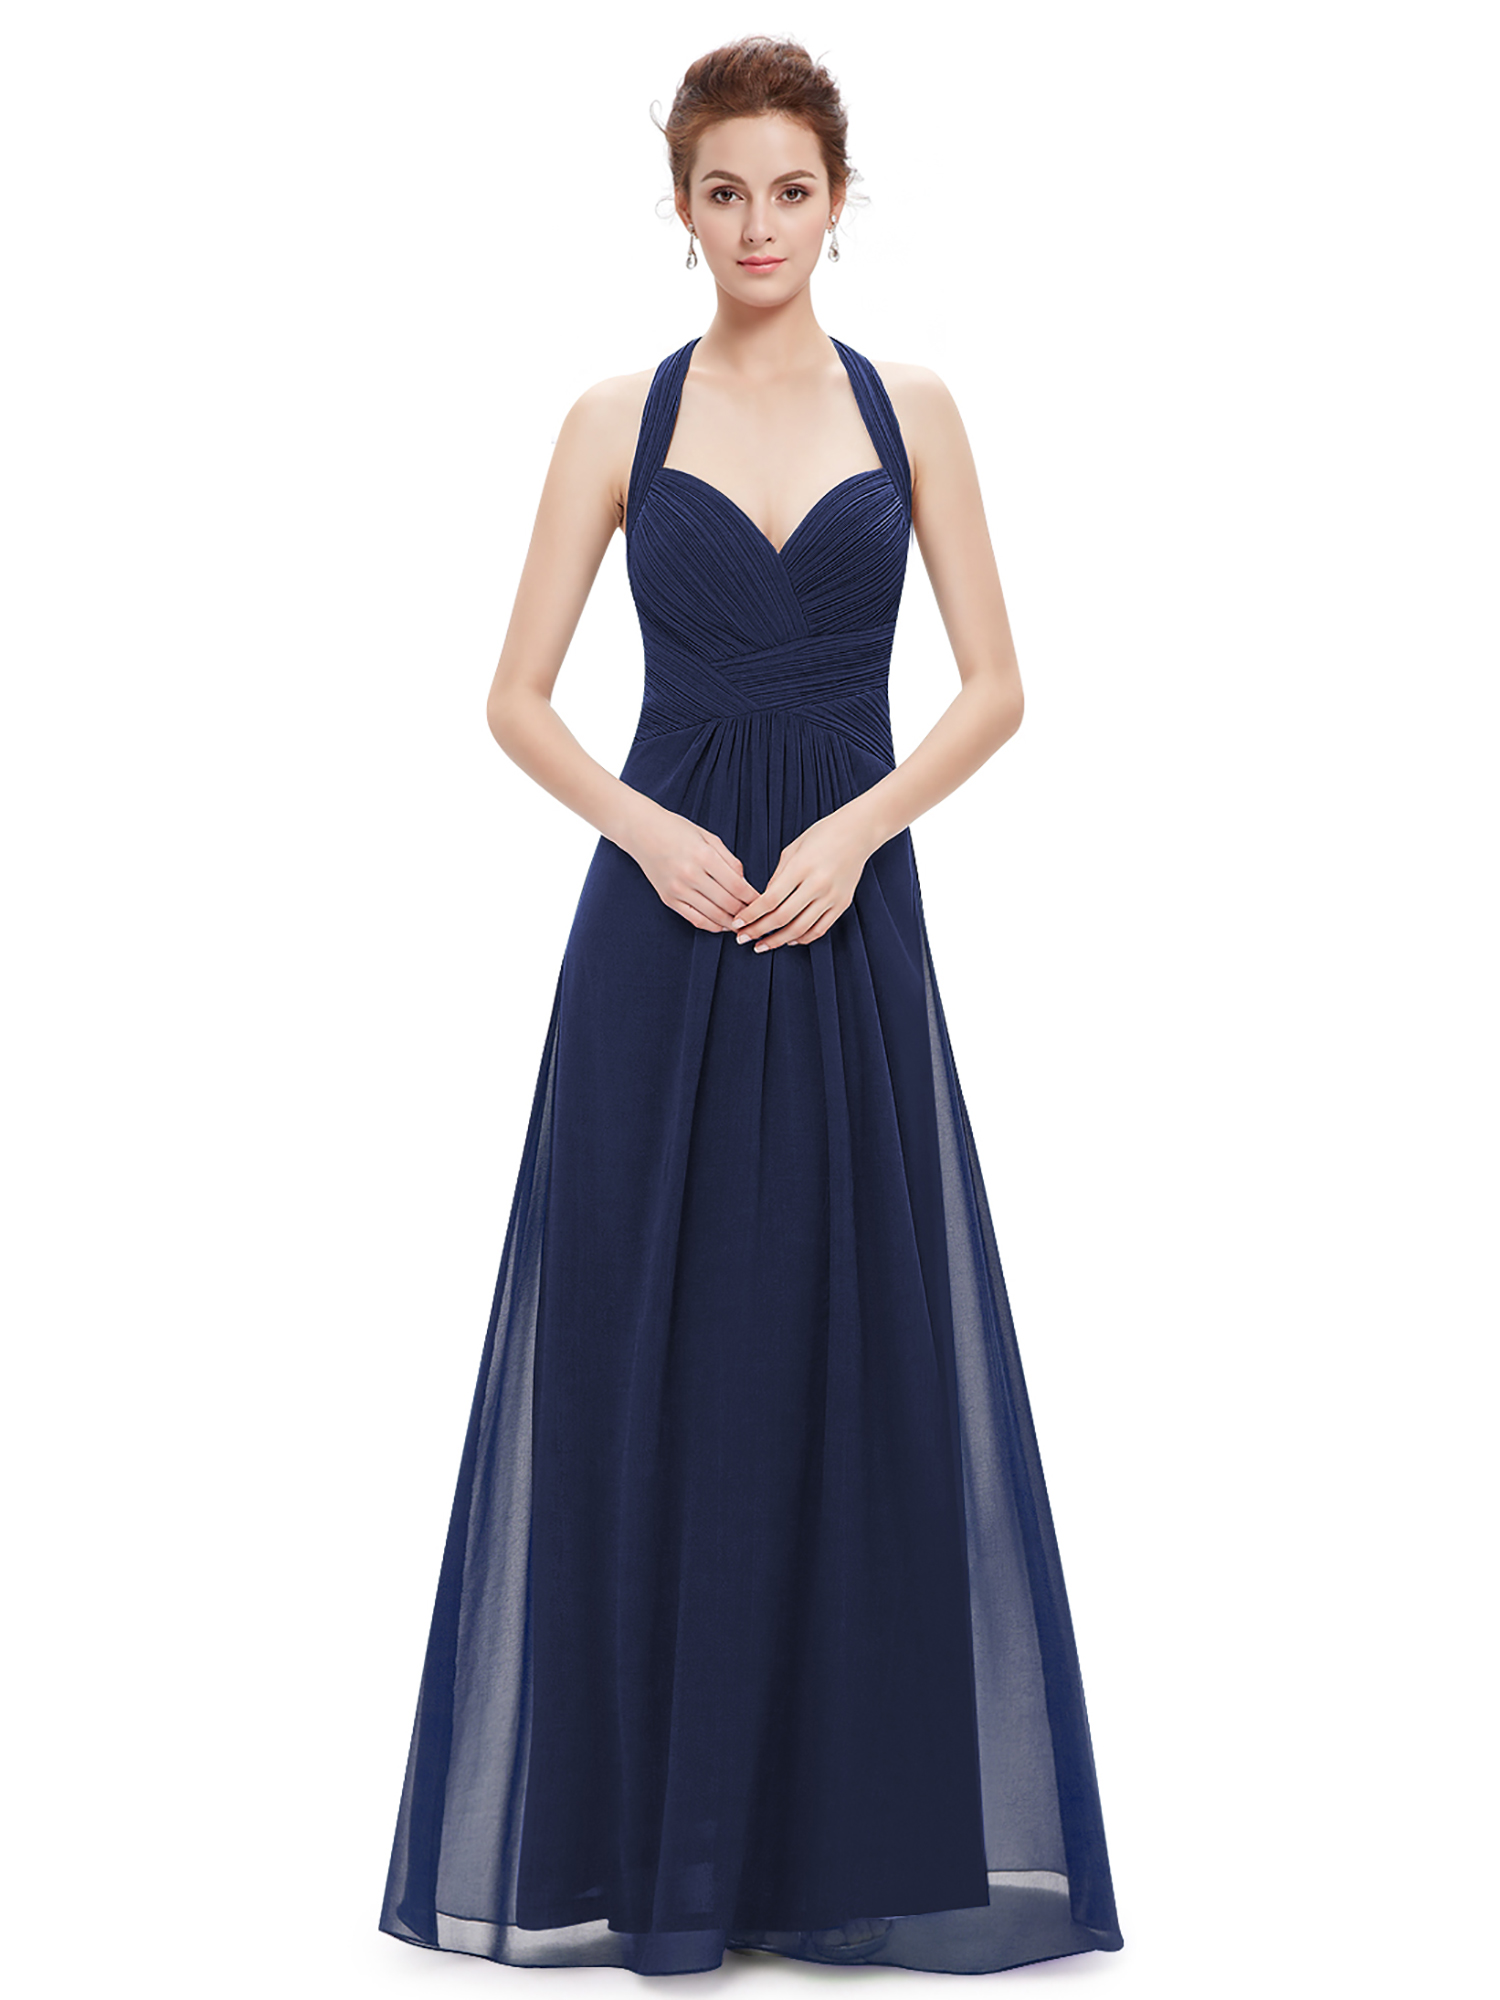 Women 39 s maxi halter bridesmaid dress evening wedding prom for Formal dress for women wedding